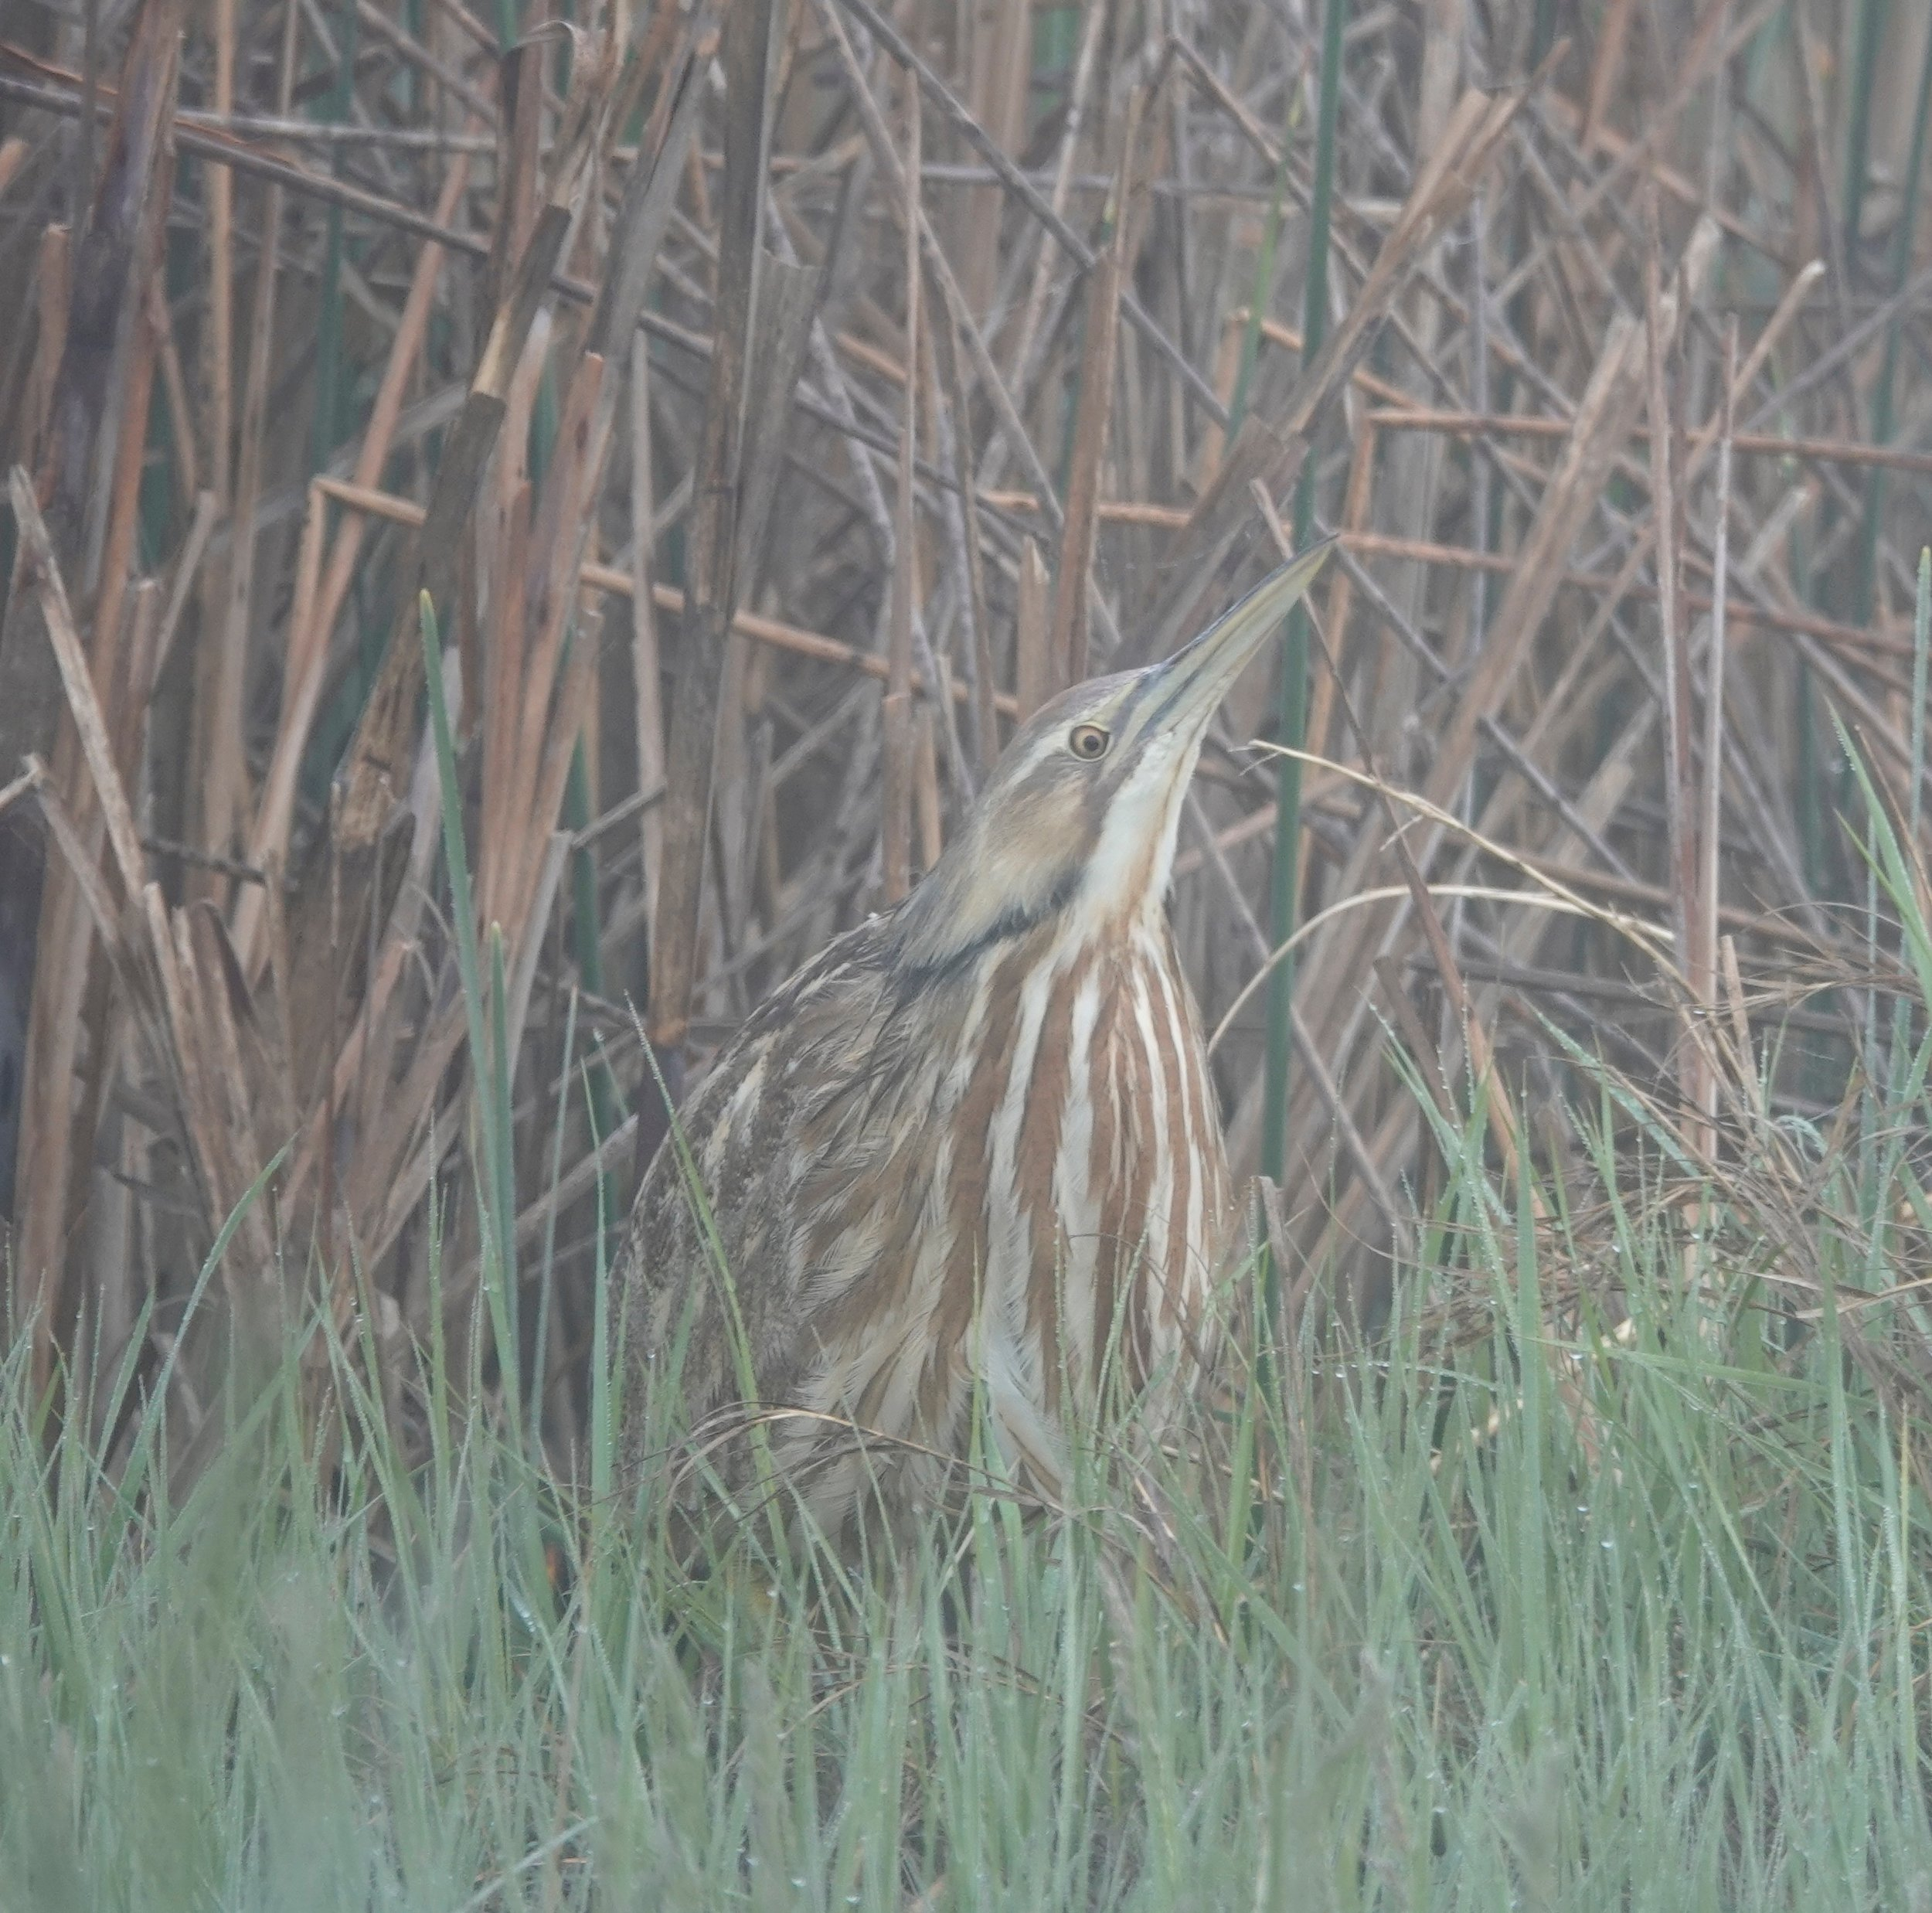 An American bittern pretending to be marsh vegetation in the sneeze of a misty morning.